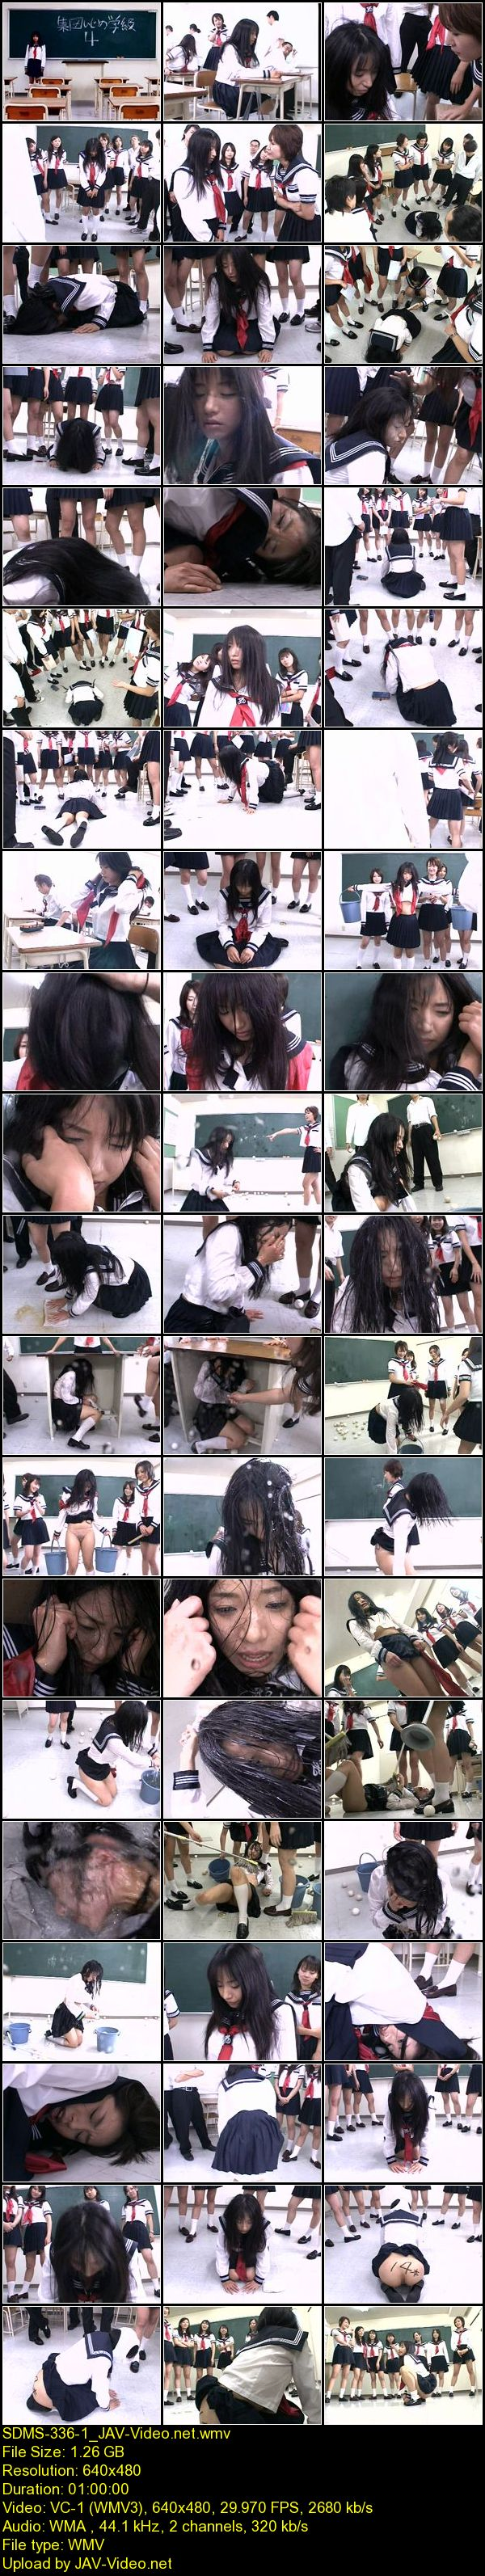 JAV Download Momo Juna [SDMS 336] 集団い○め学級  4 2008 01 17